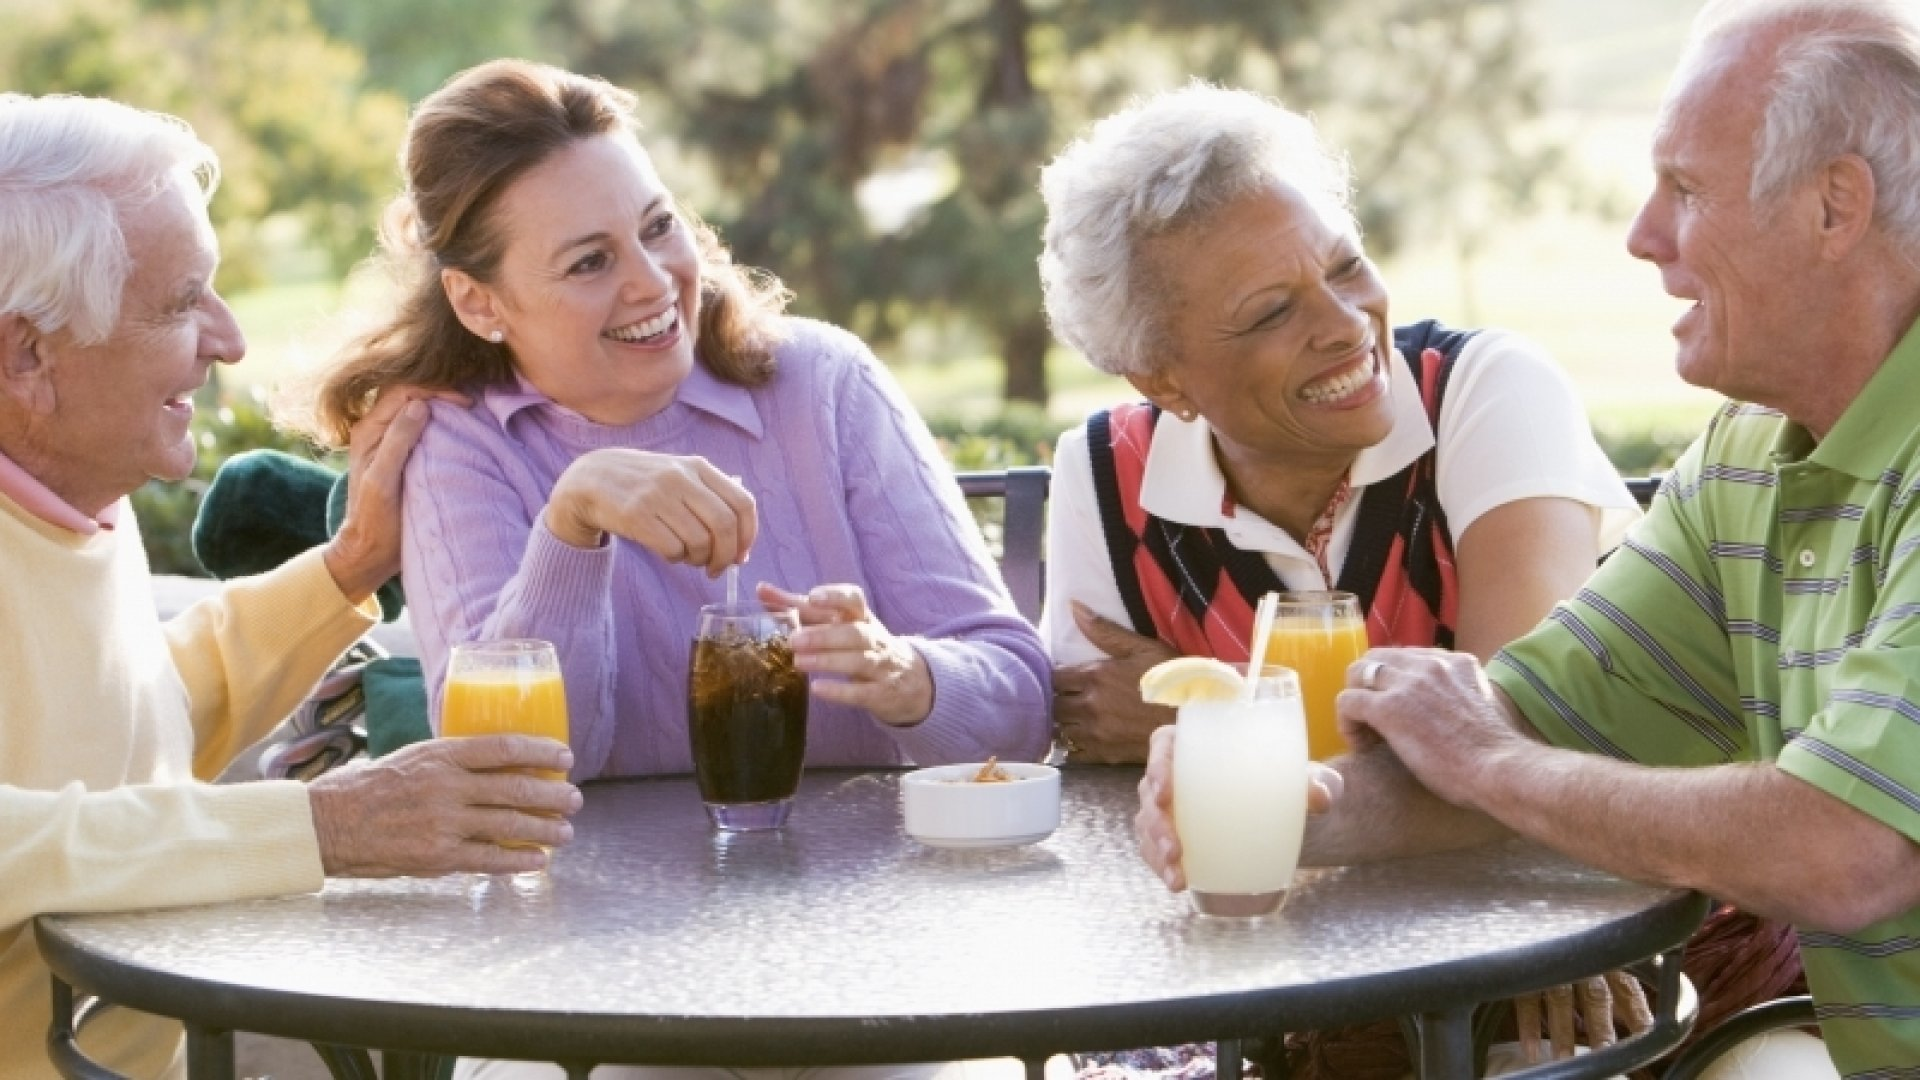 5 Cultural Nuances to Consider When Marketing to Senior Citizens